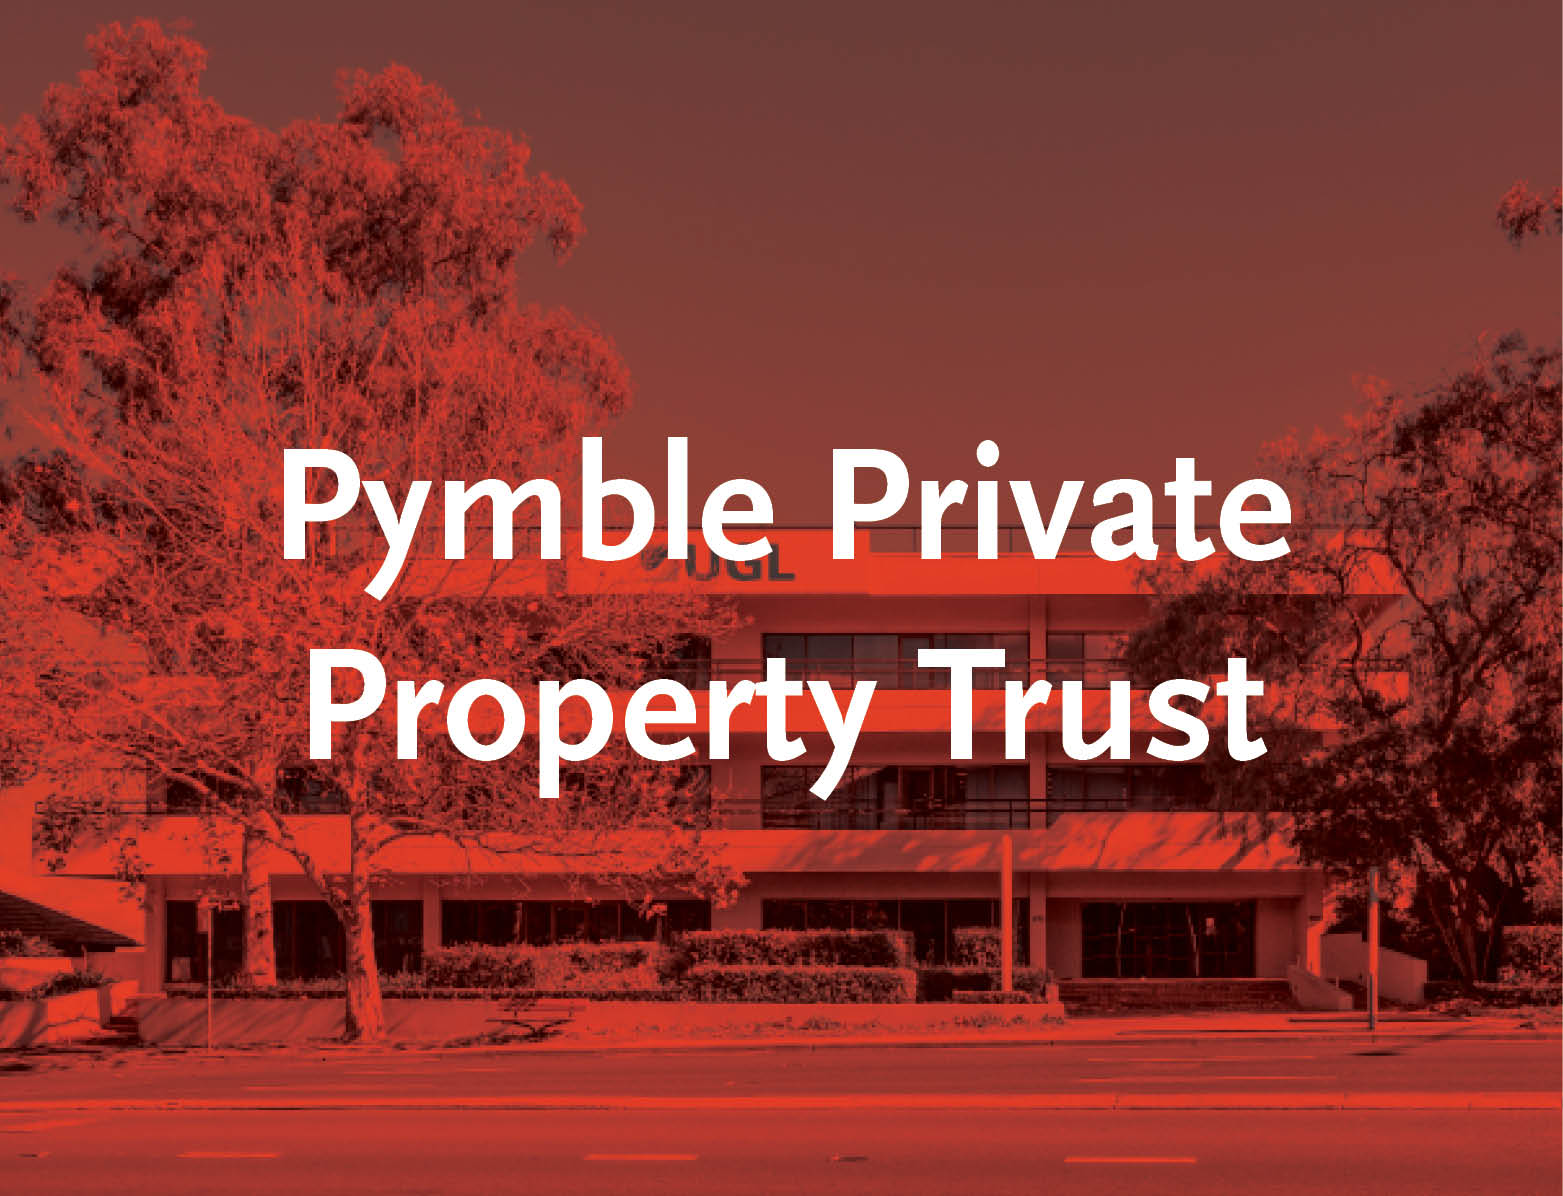 Pymble Private Property Trust | Trilogy Funds